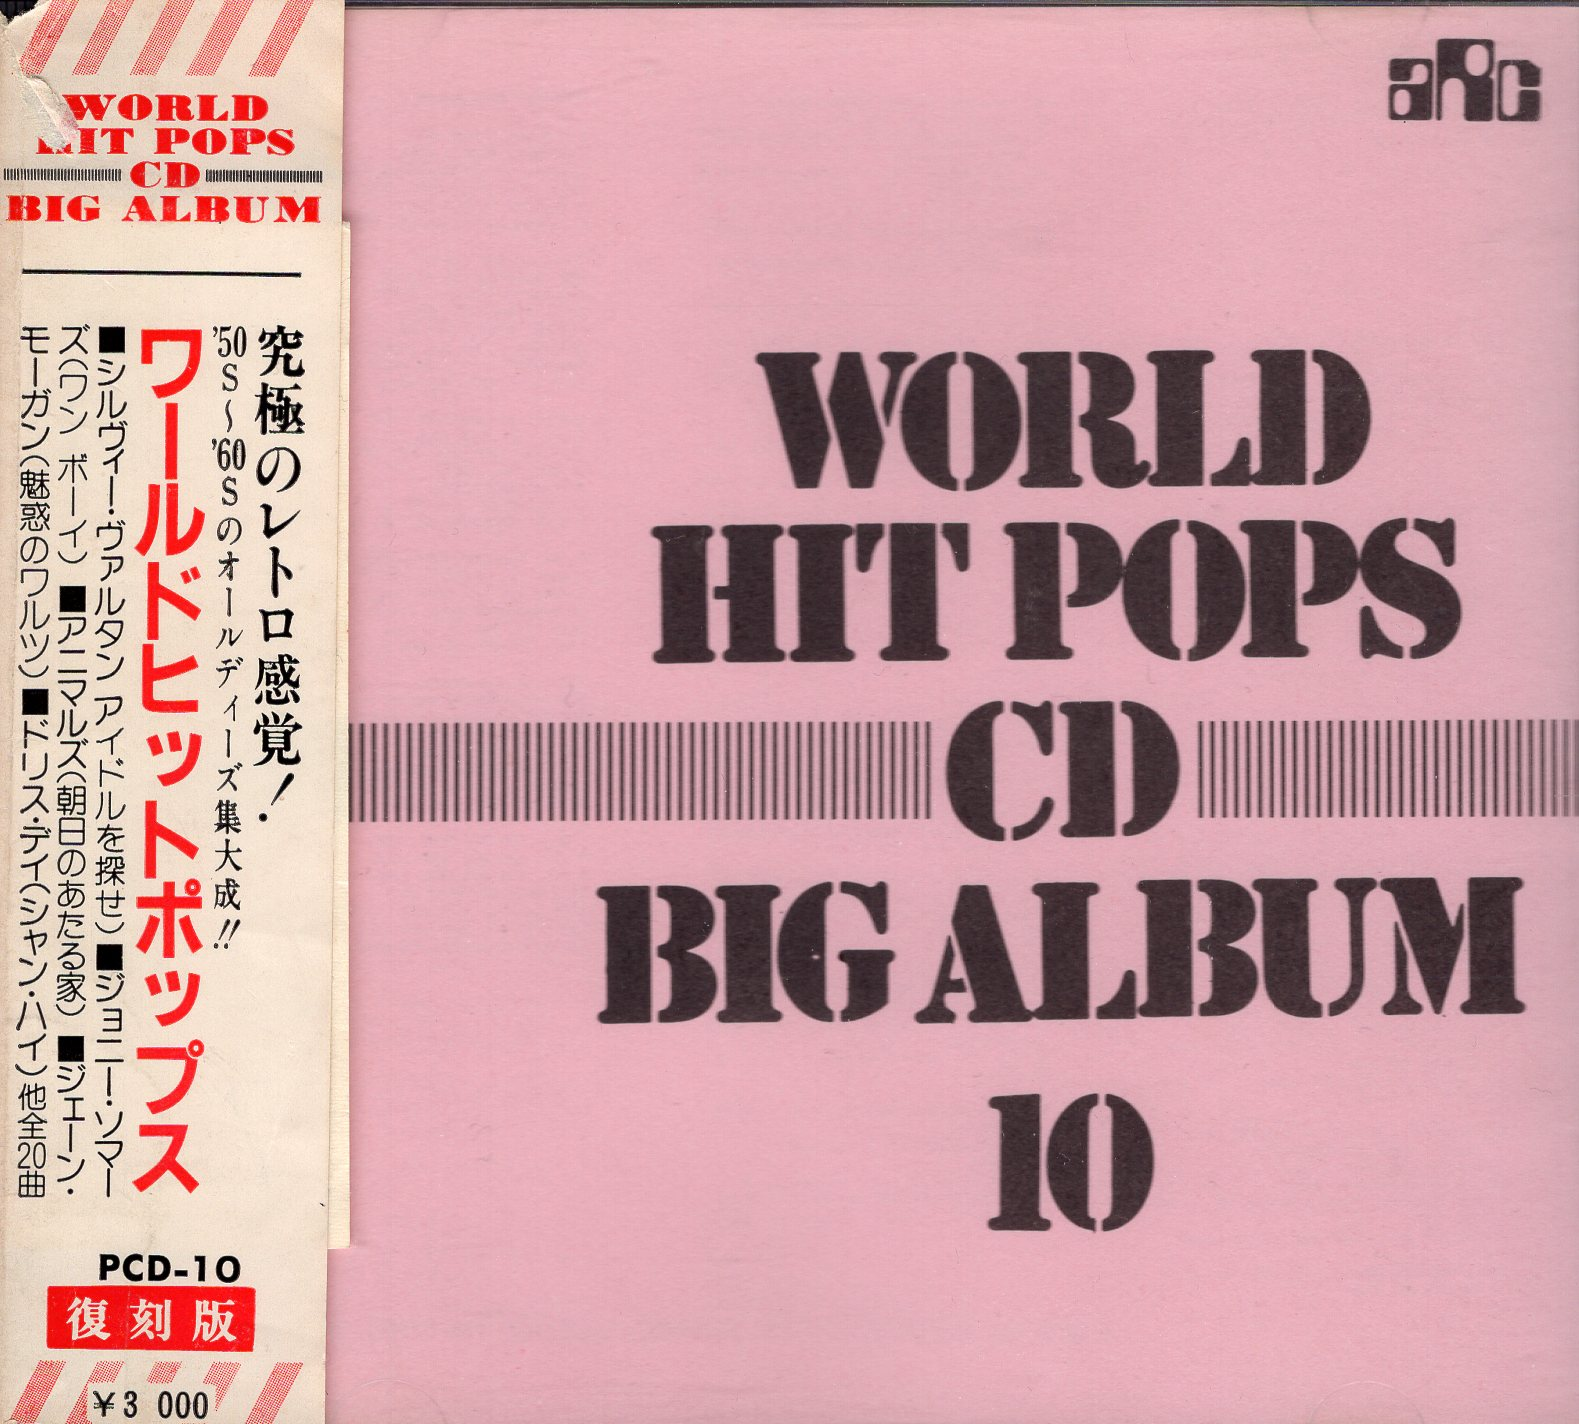 """World Hit Pops CD Big Album 10"""